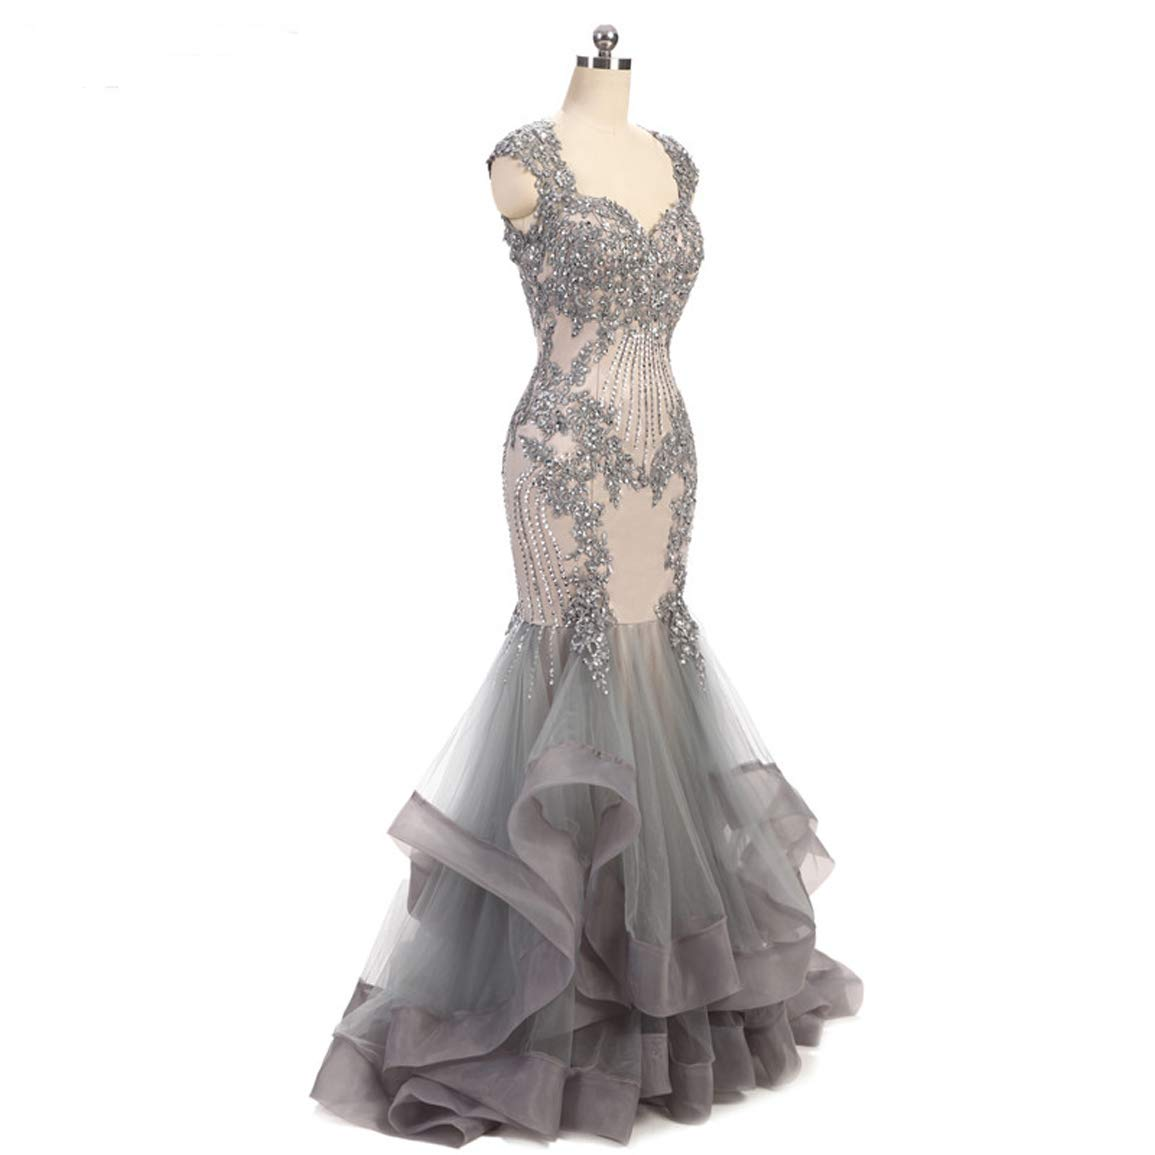 48357a996b Adela Women's Lace Beaded Mermaid Prom Dresses Tulle Ruffles Sequins  Evening Gowns Backless Bridal Dress AR142 at Amazon Women's Clothing store: